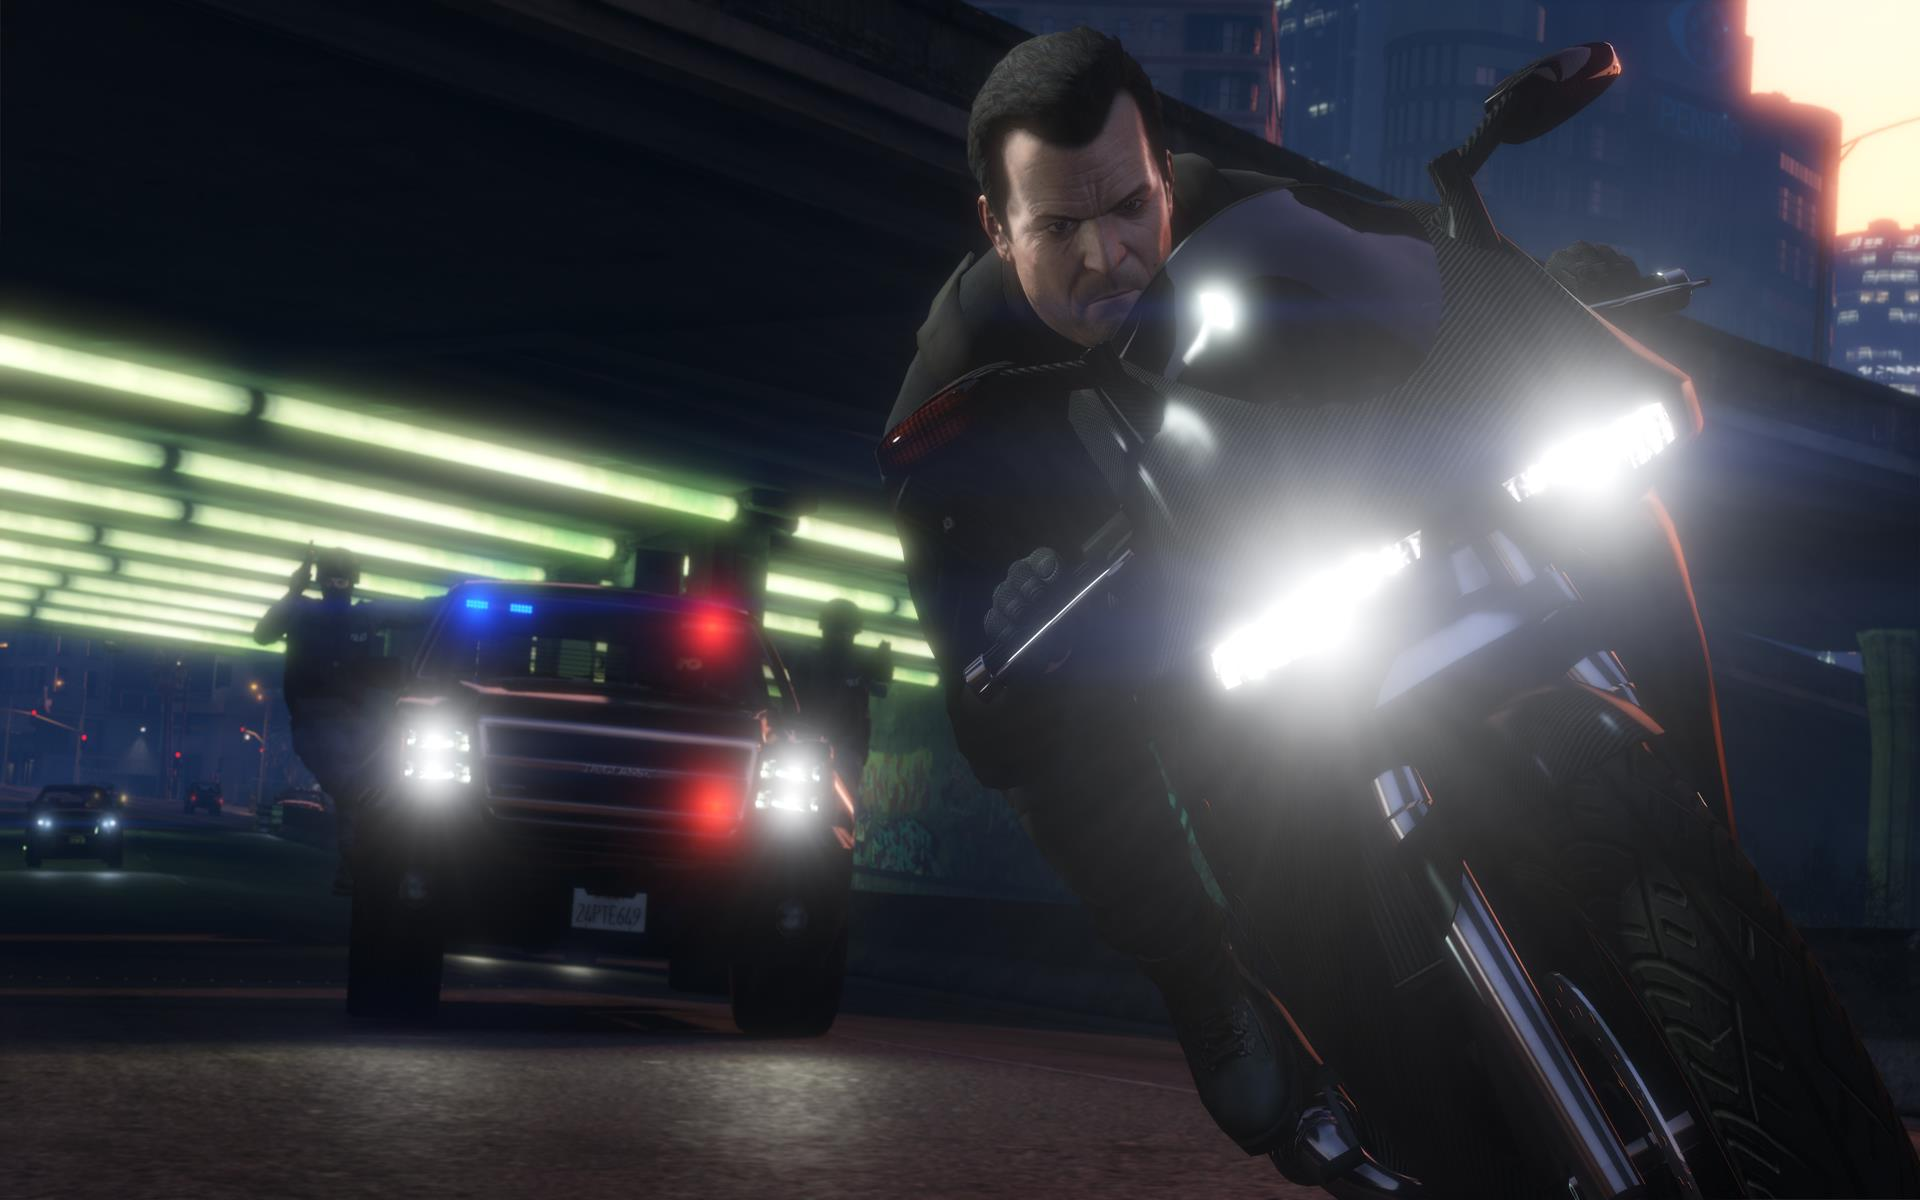 Hd Wallpaper Police Cars Gta 5 S Director Mode Is Everything You Wanted Gta 4 S